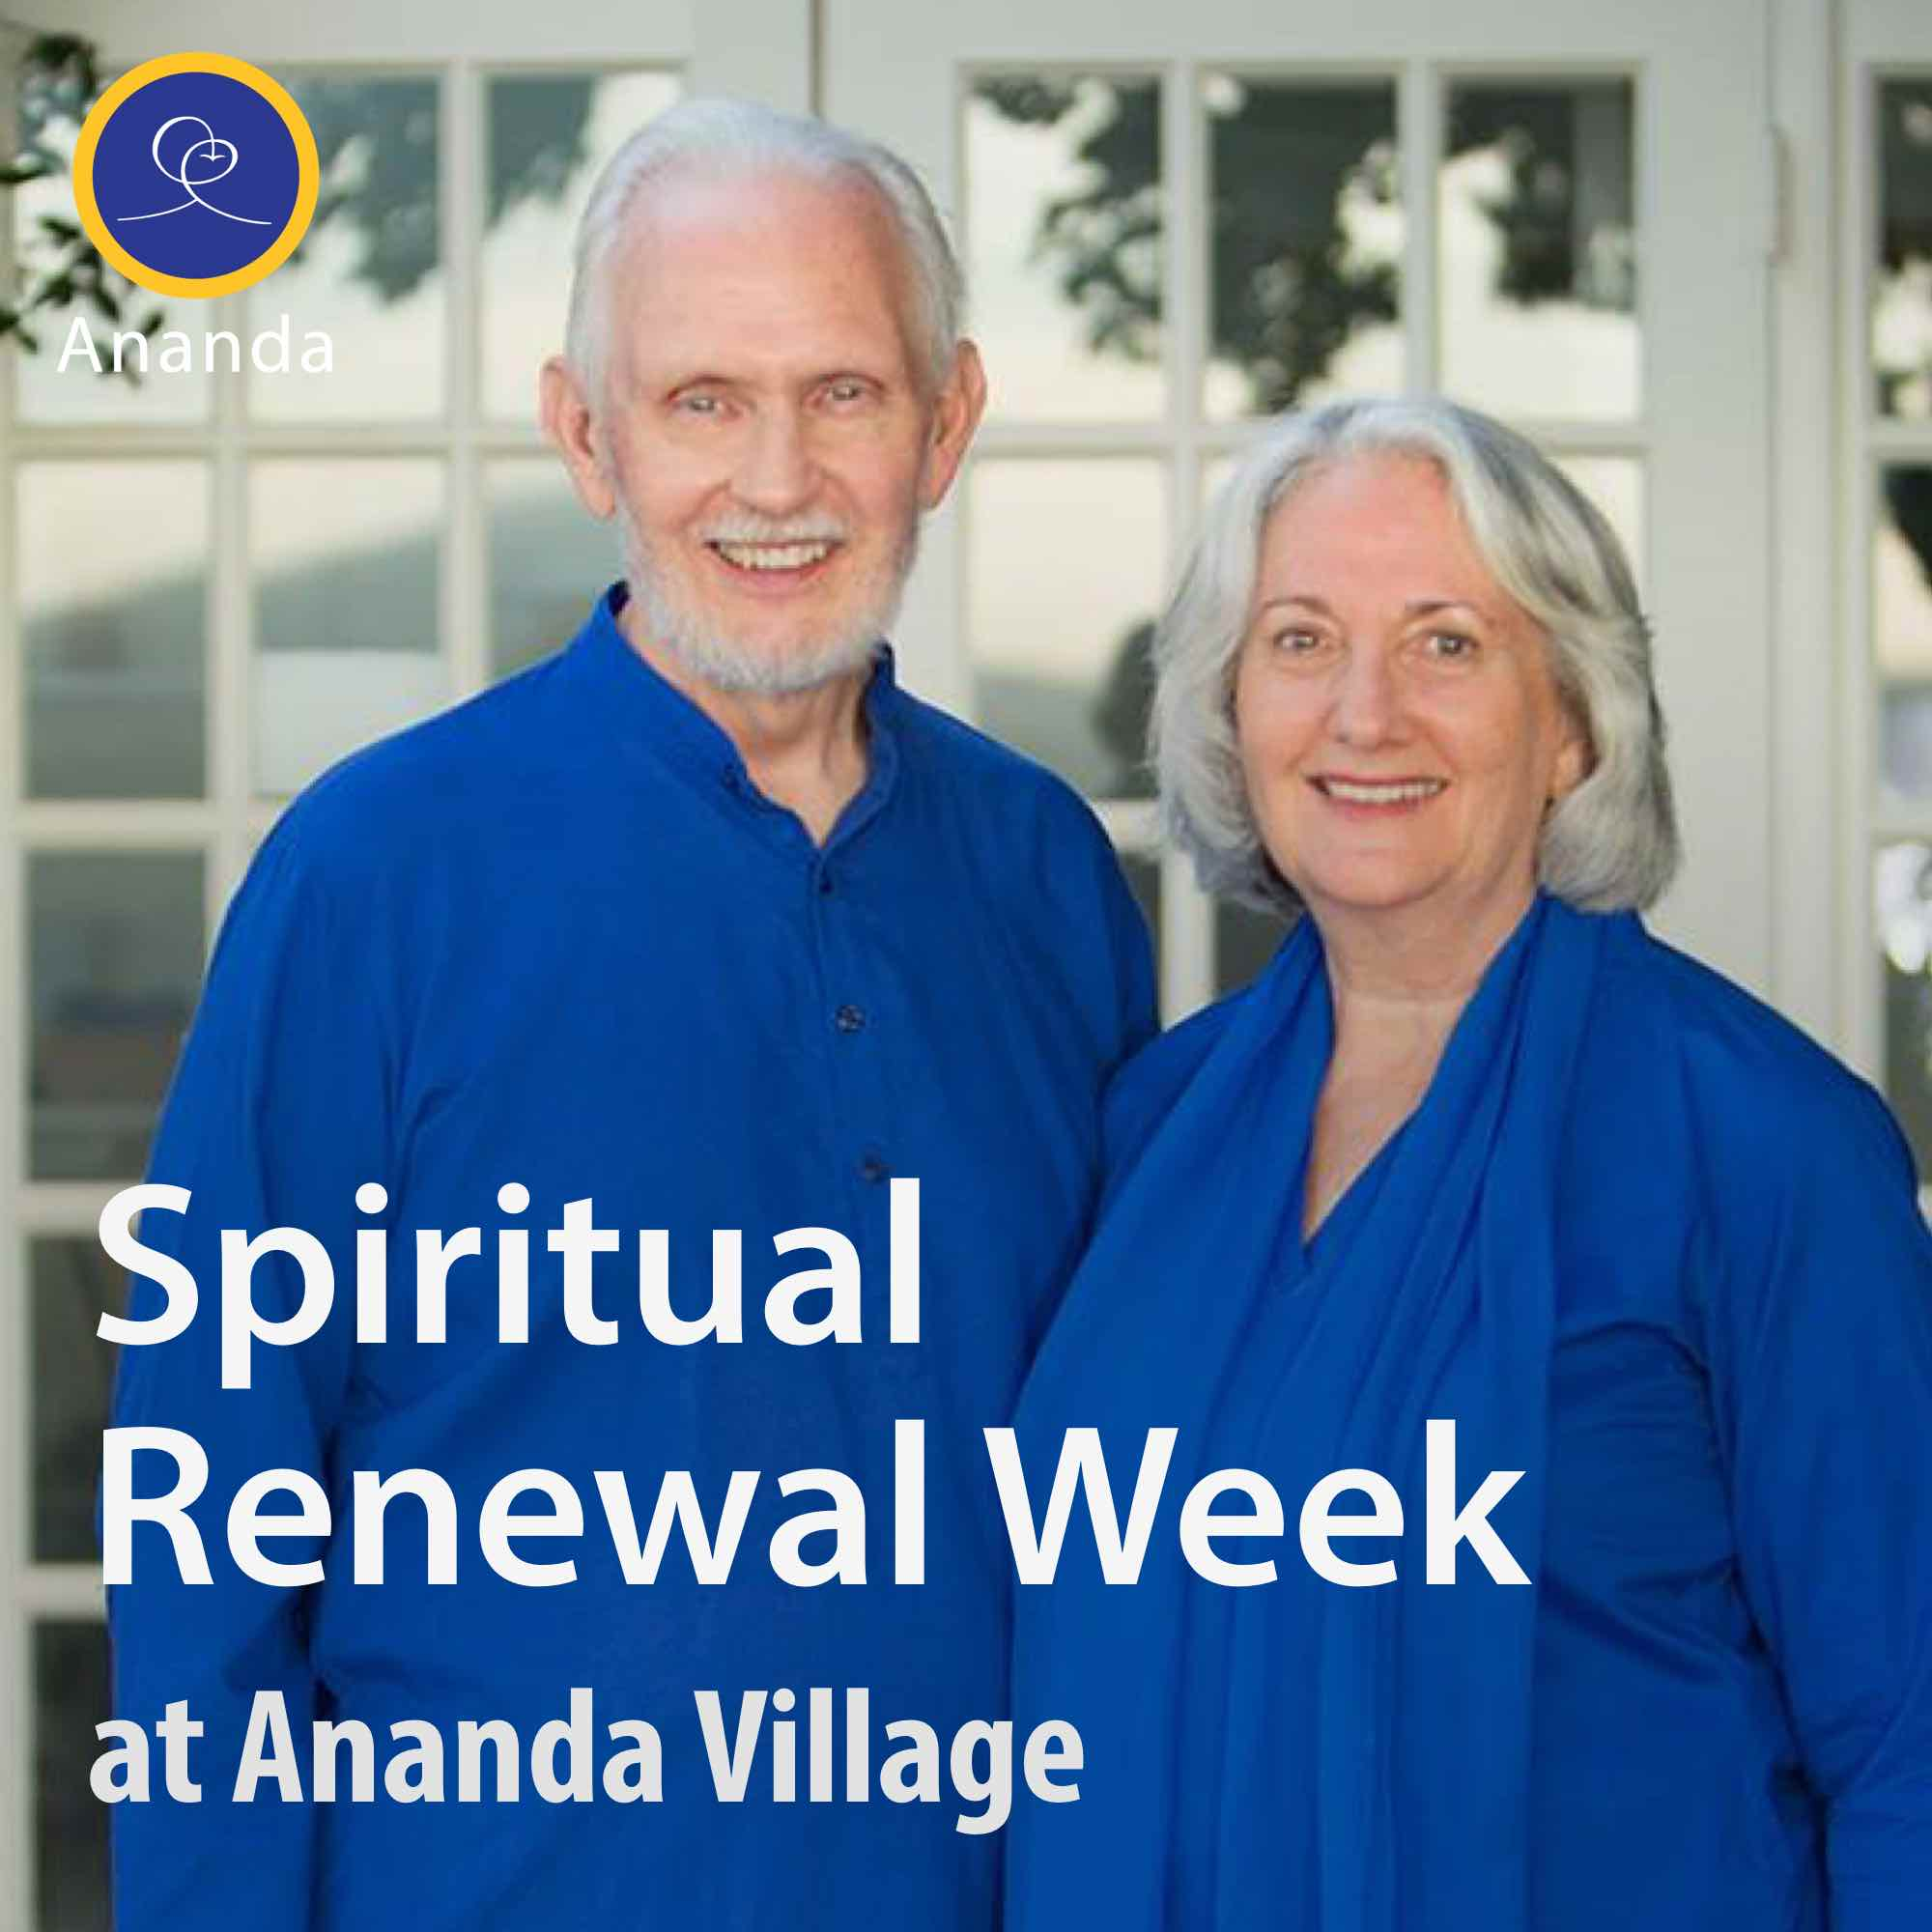 Spiritual Renewal Week